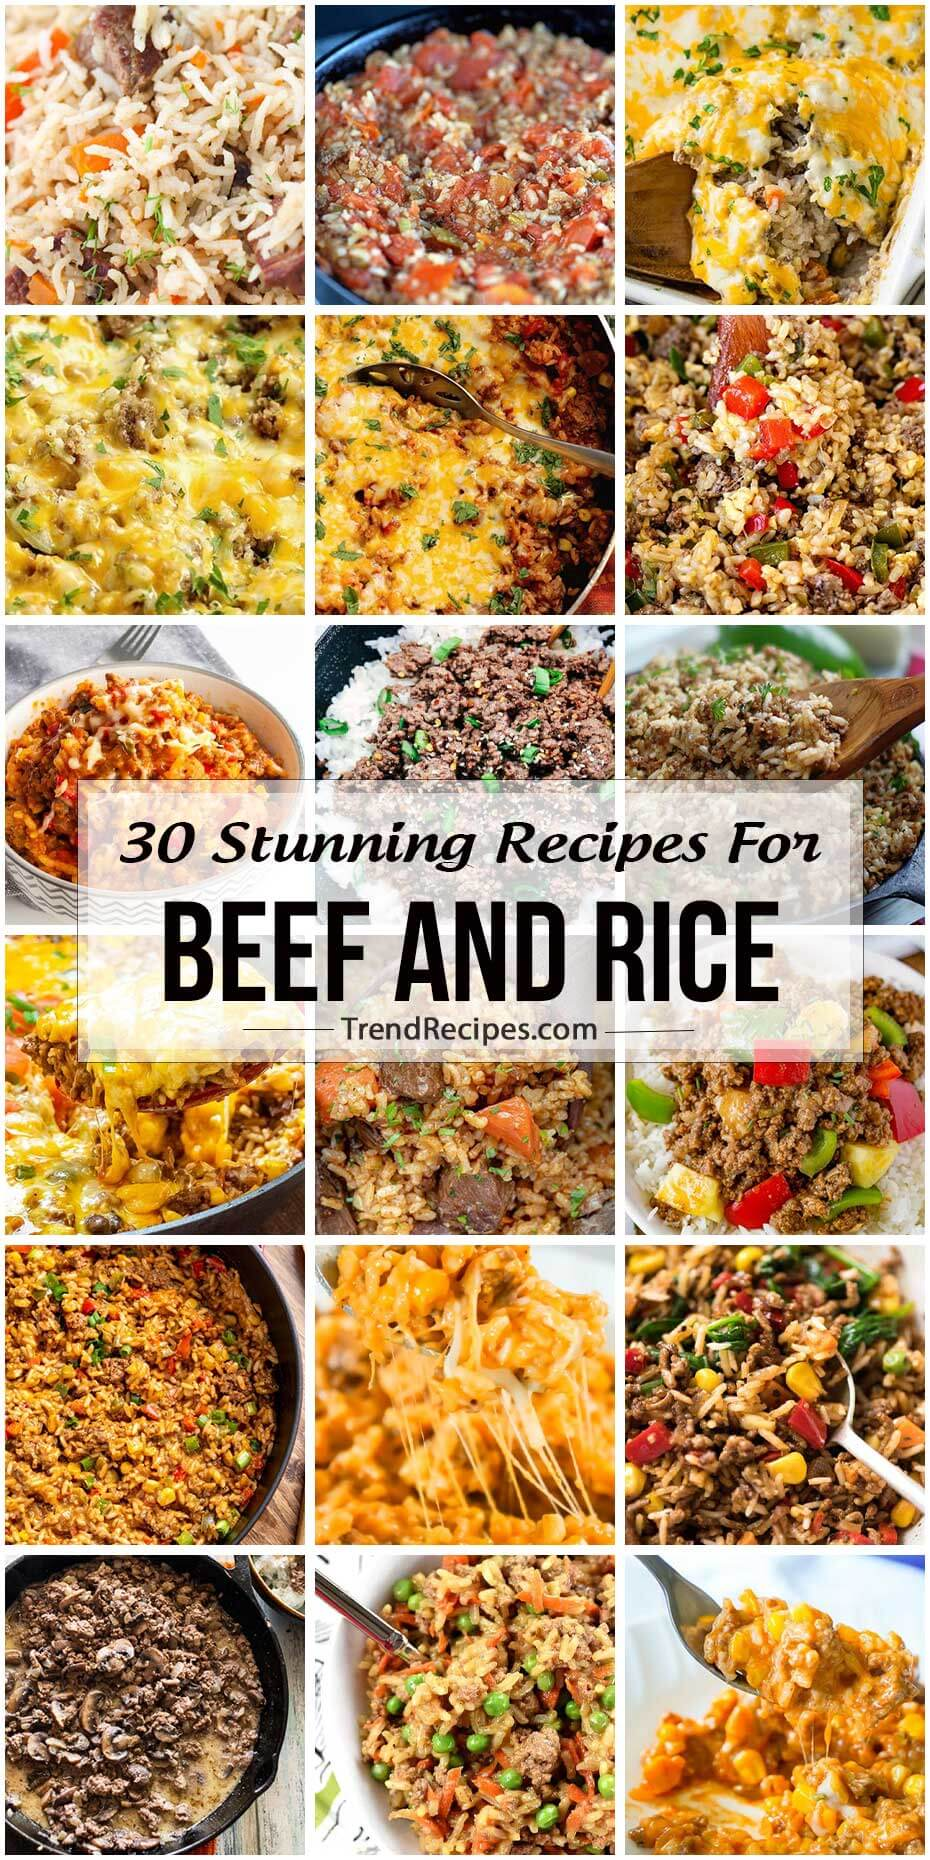 30 Stunning Recipes For Beef and Rice